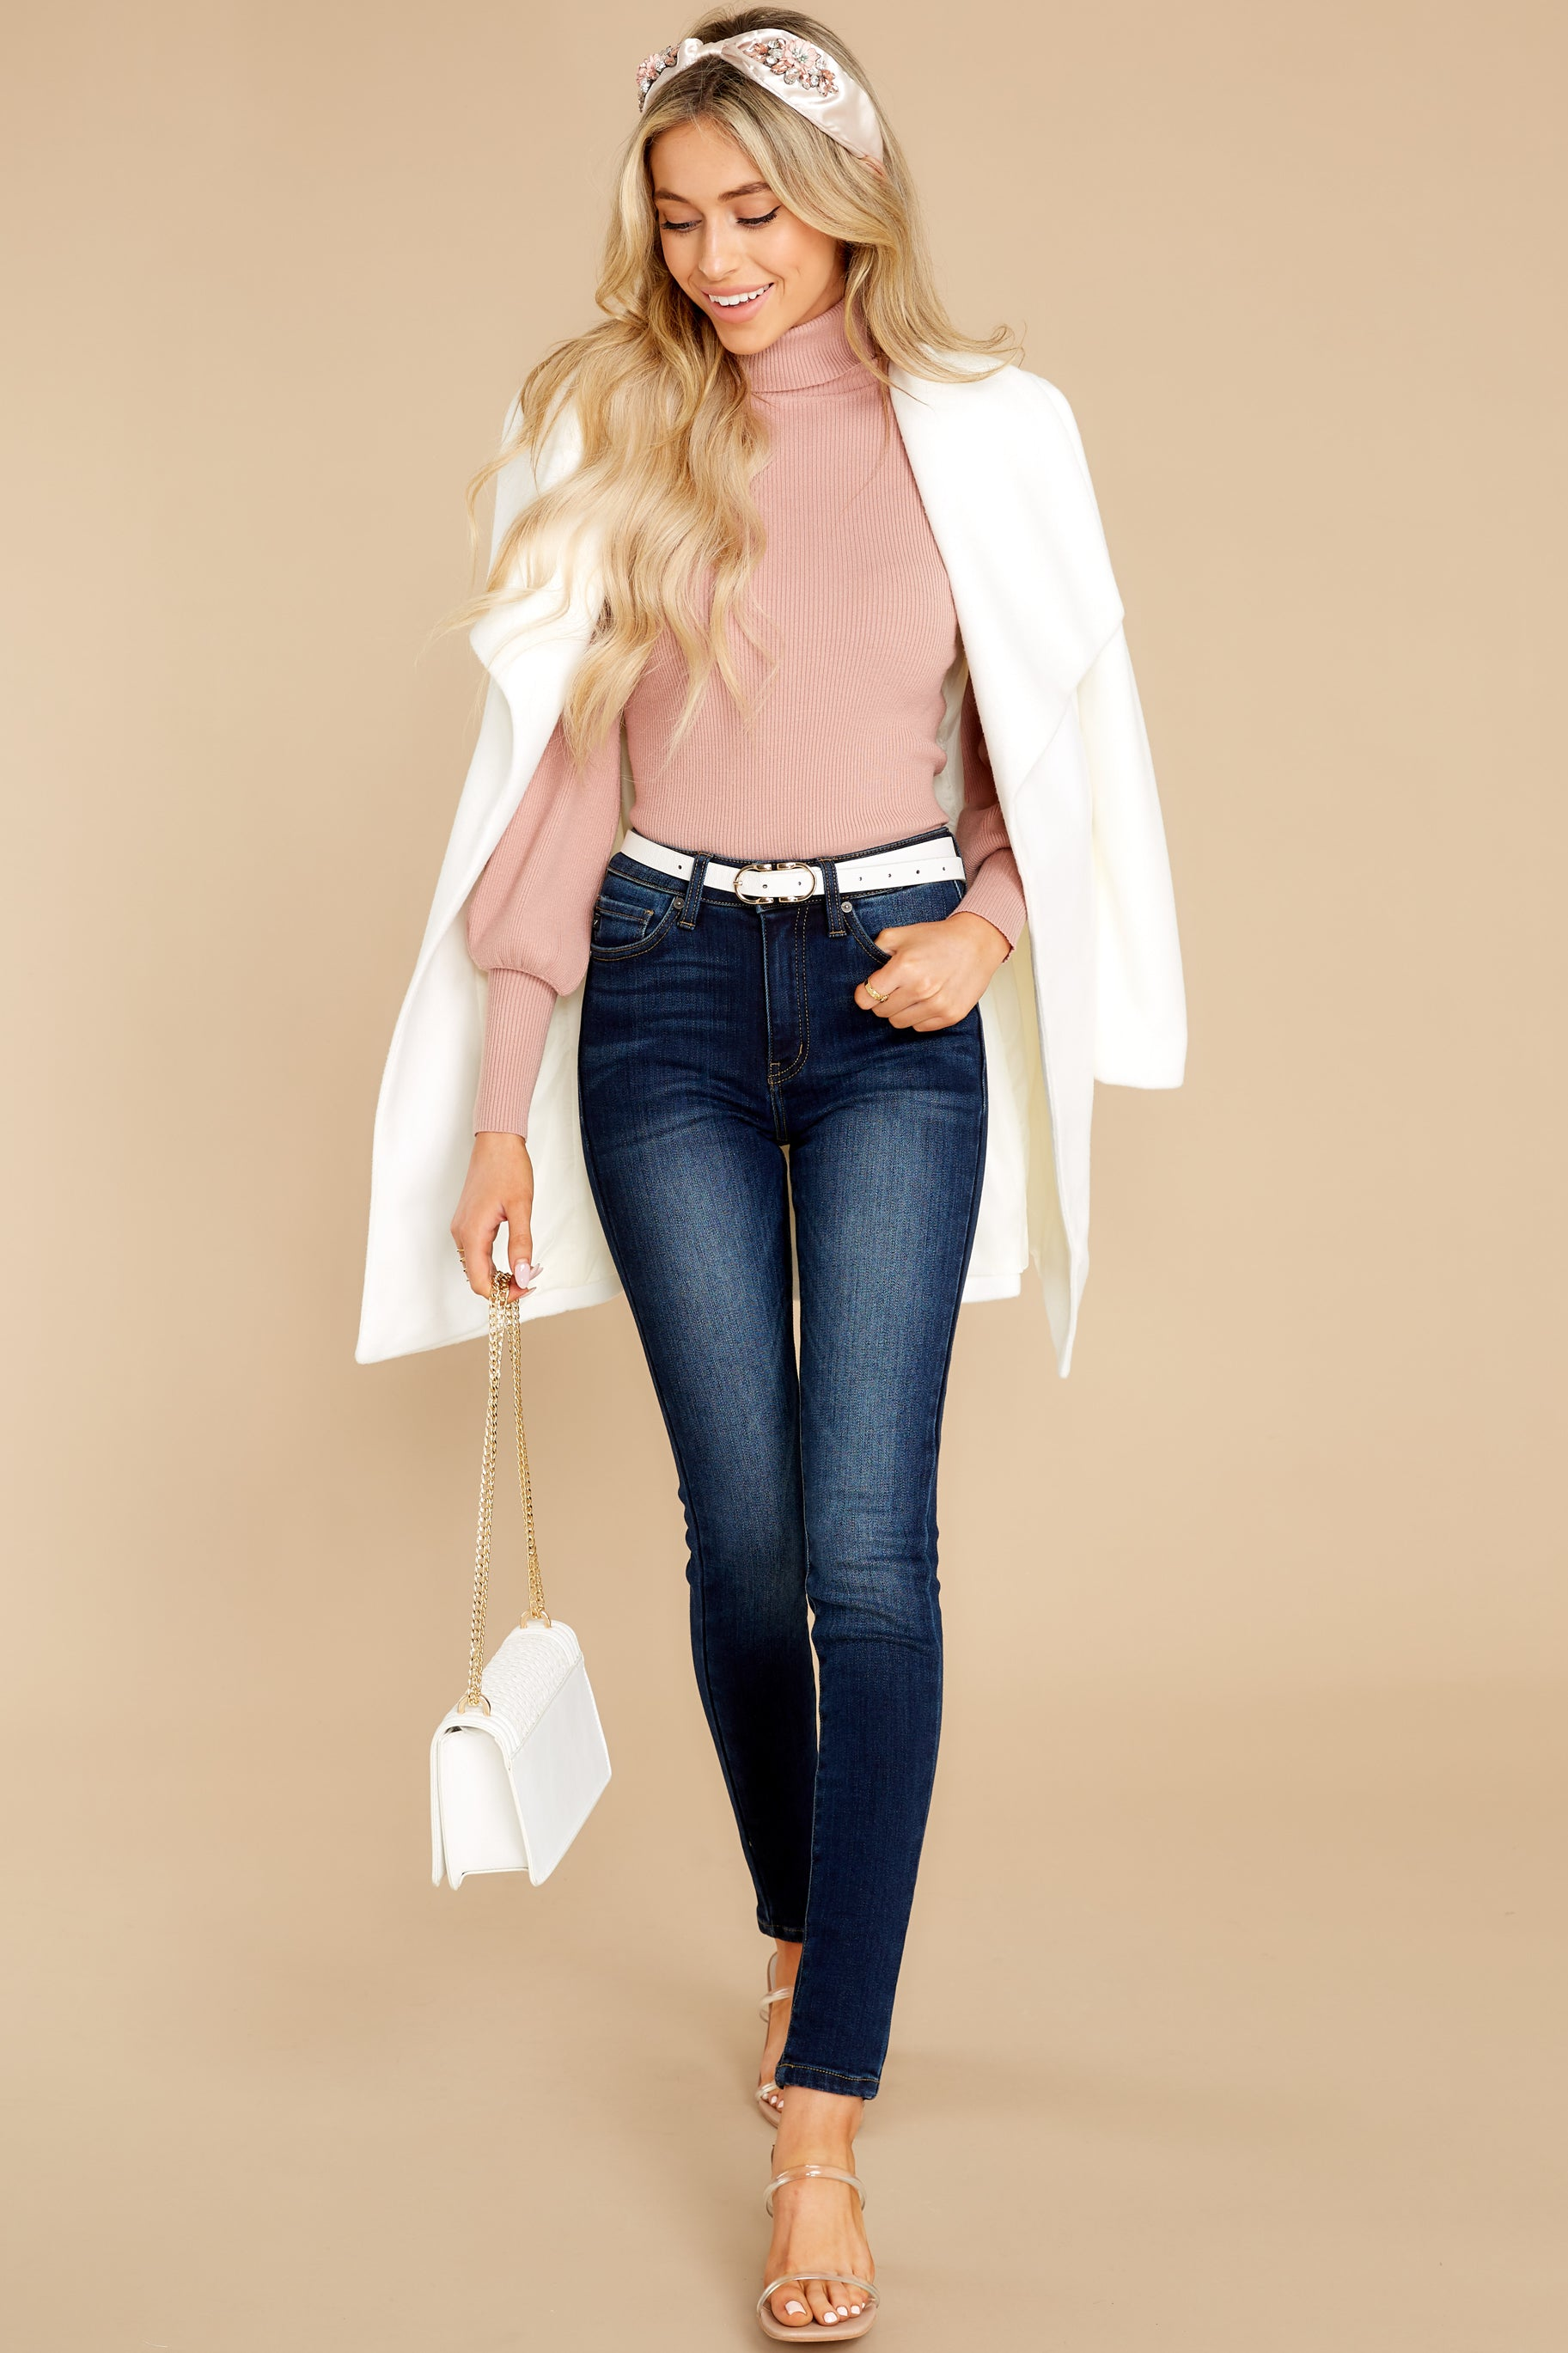 2 Waiting On Forever Mauve Blush Sweater at reddress.com